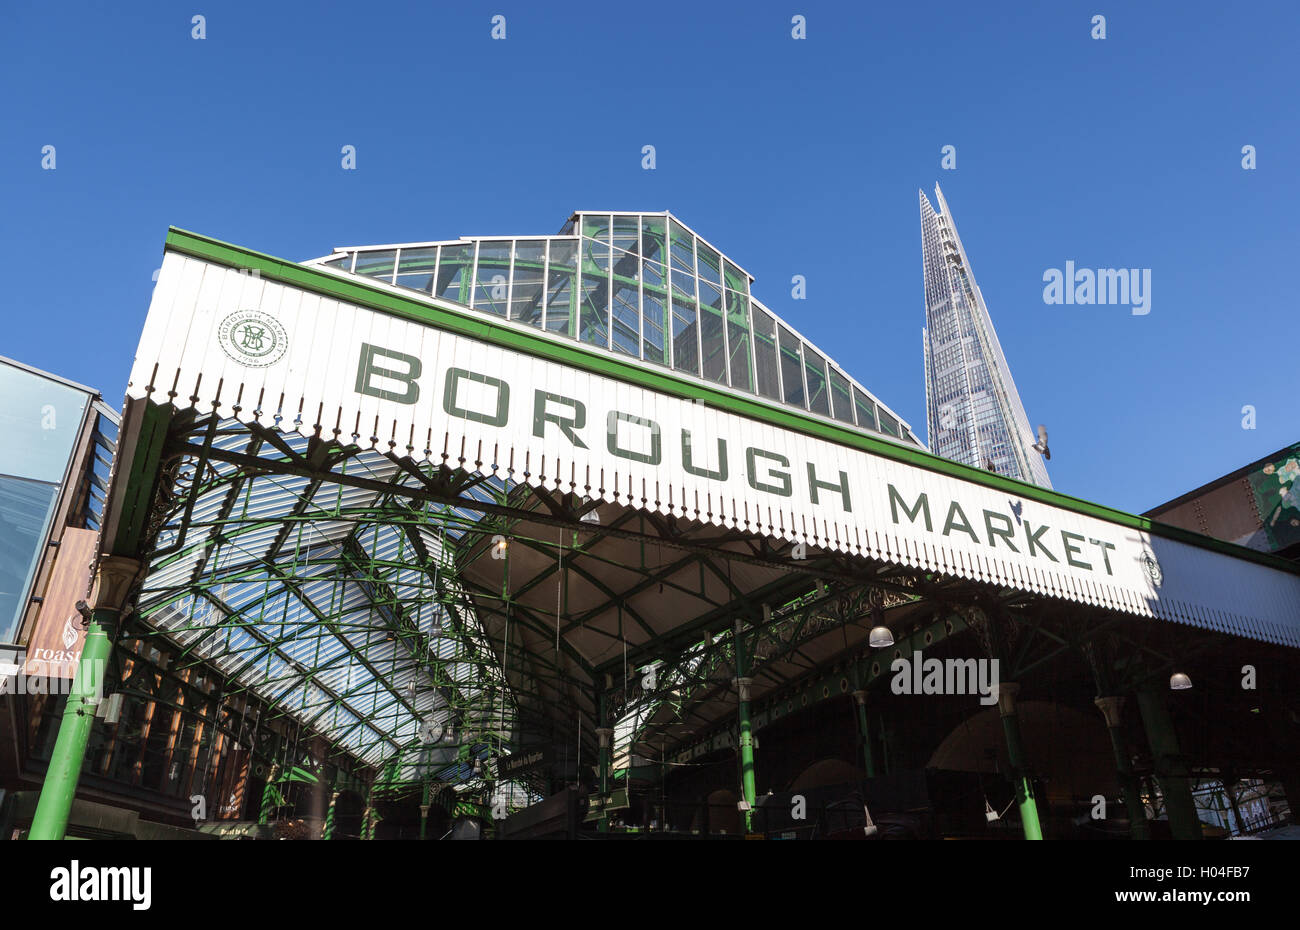 Entrance to Borough Market, London. - Stock Image